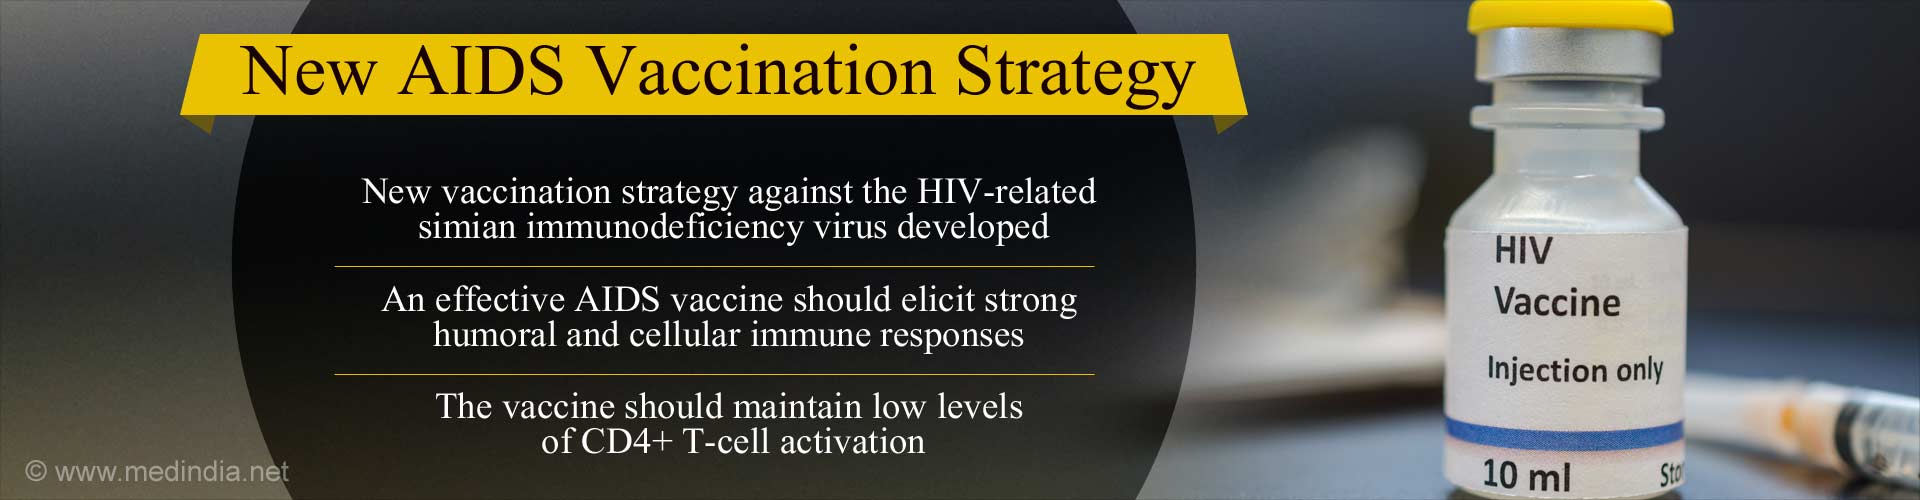 New Strategy for Vaccination Against AIDS